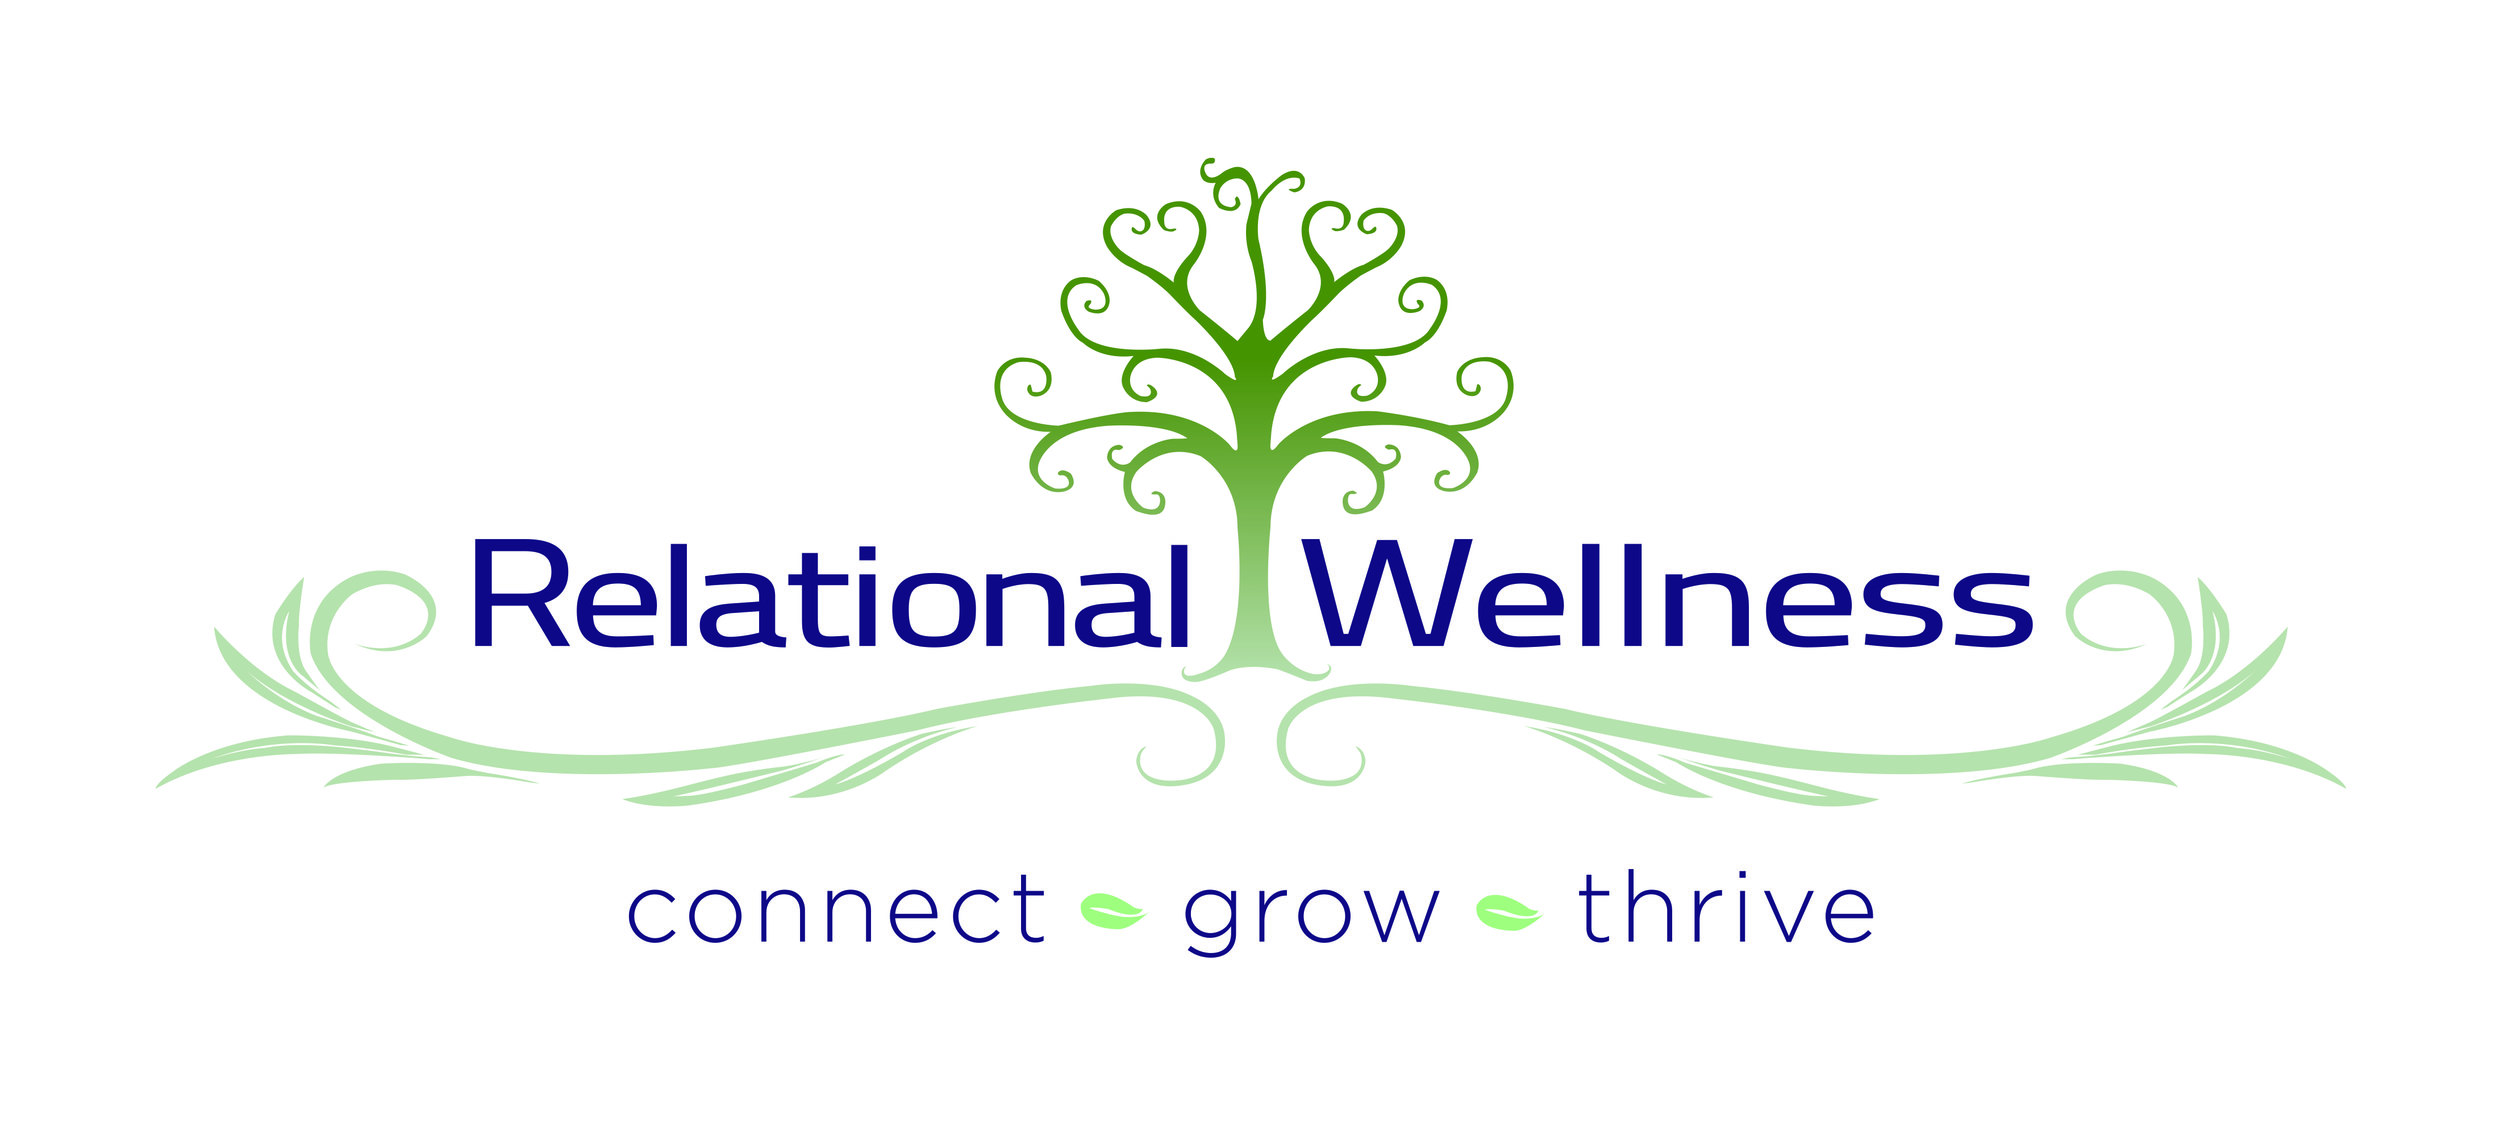 Relational Wellness-Final Logo with Tag Line.jpg